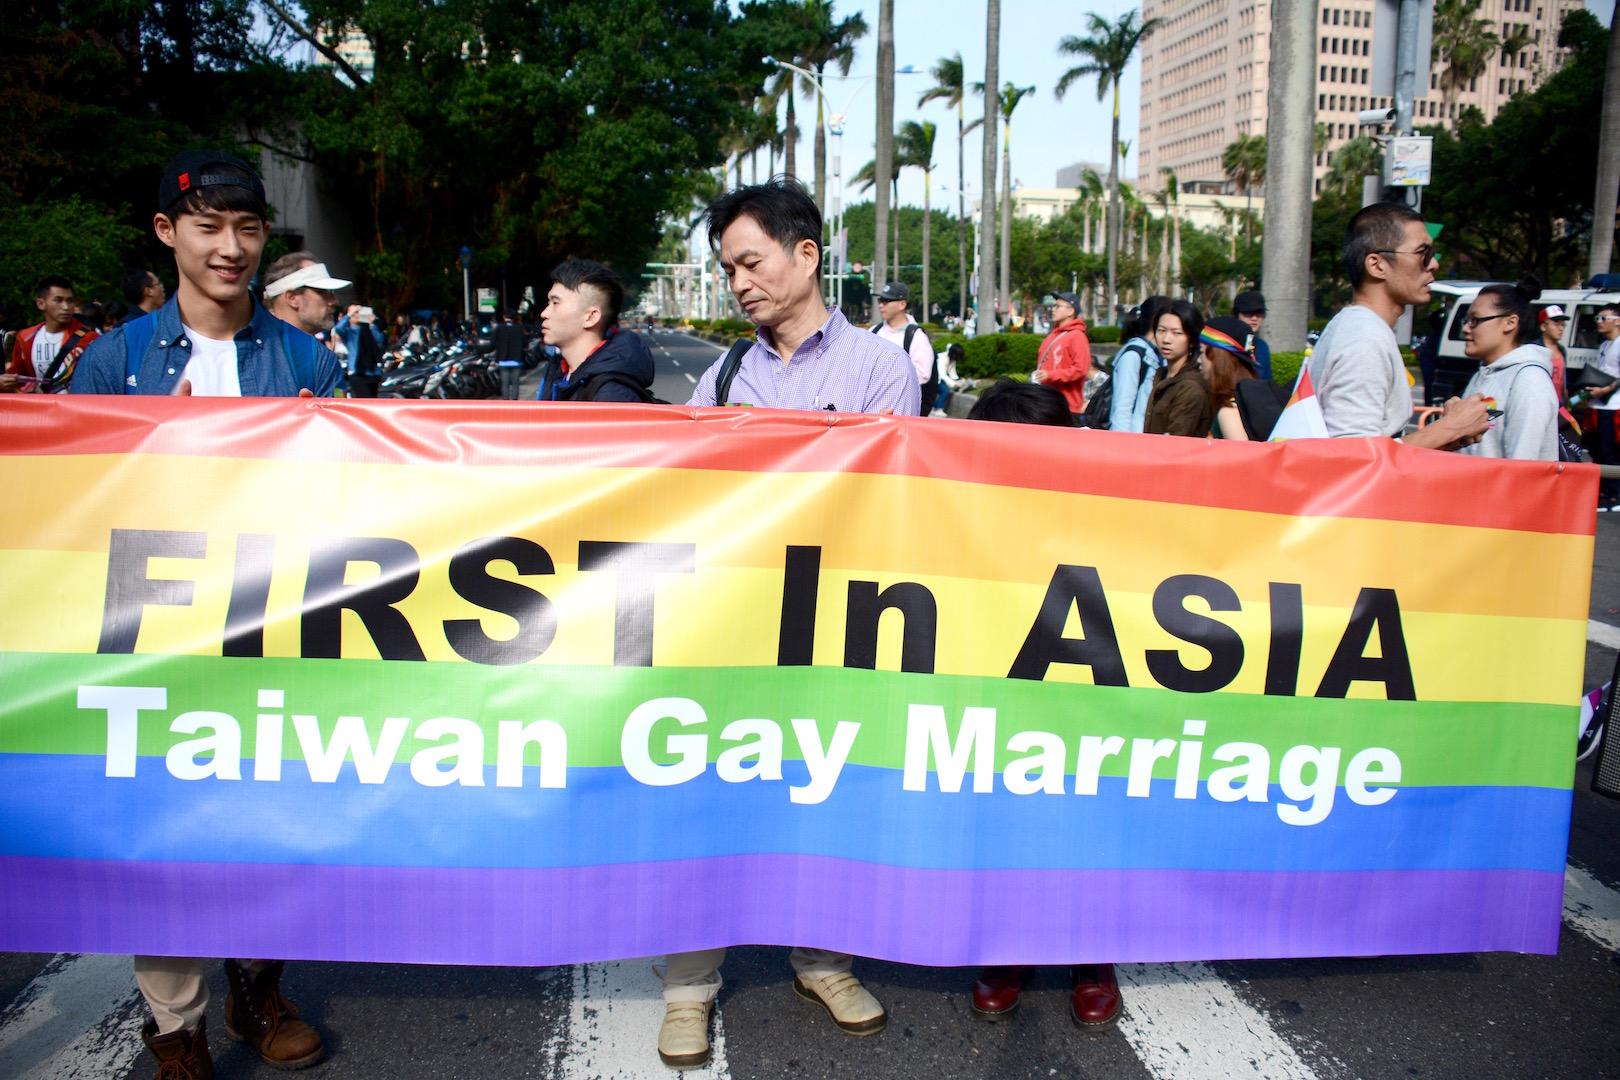 Human rights homosexual marriage in china